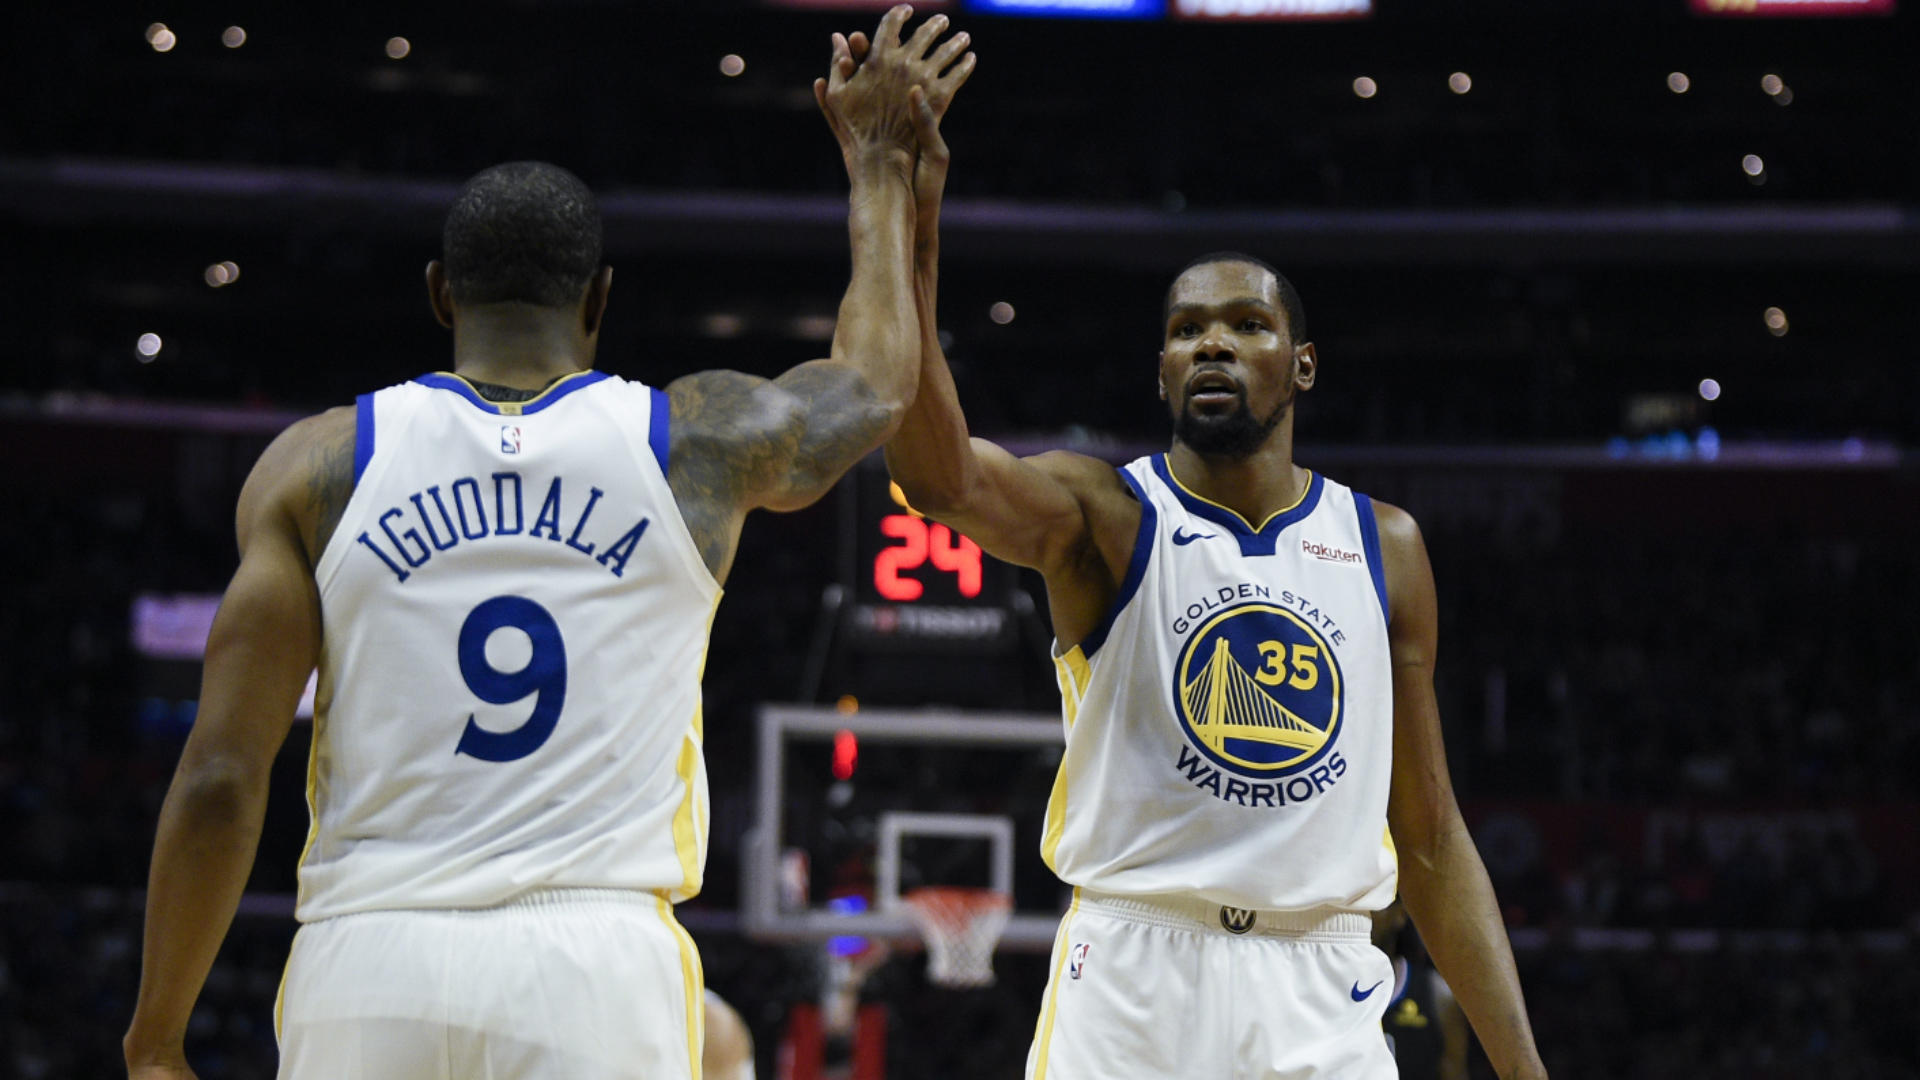 NBA playoffs scores, highlights, results: Warriors get revenge, rout Clippers in Game 3; Spurs, 76ers take 2-1 leads